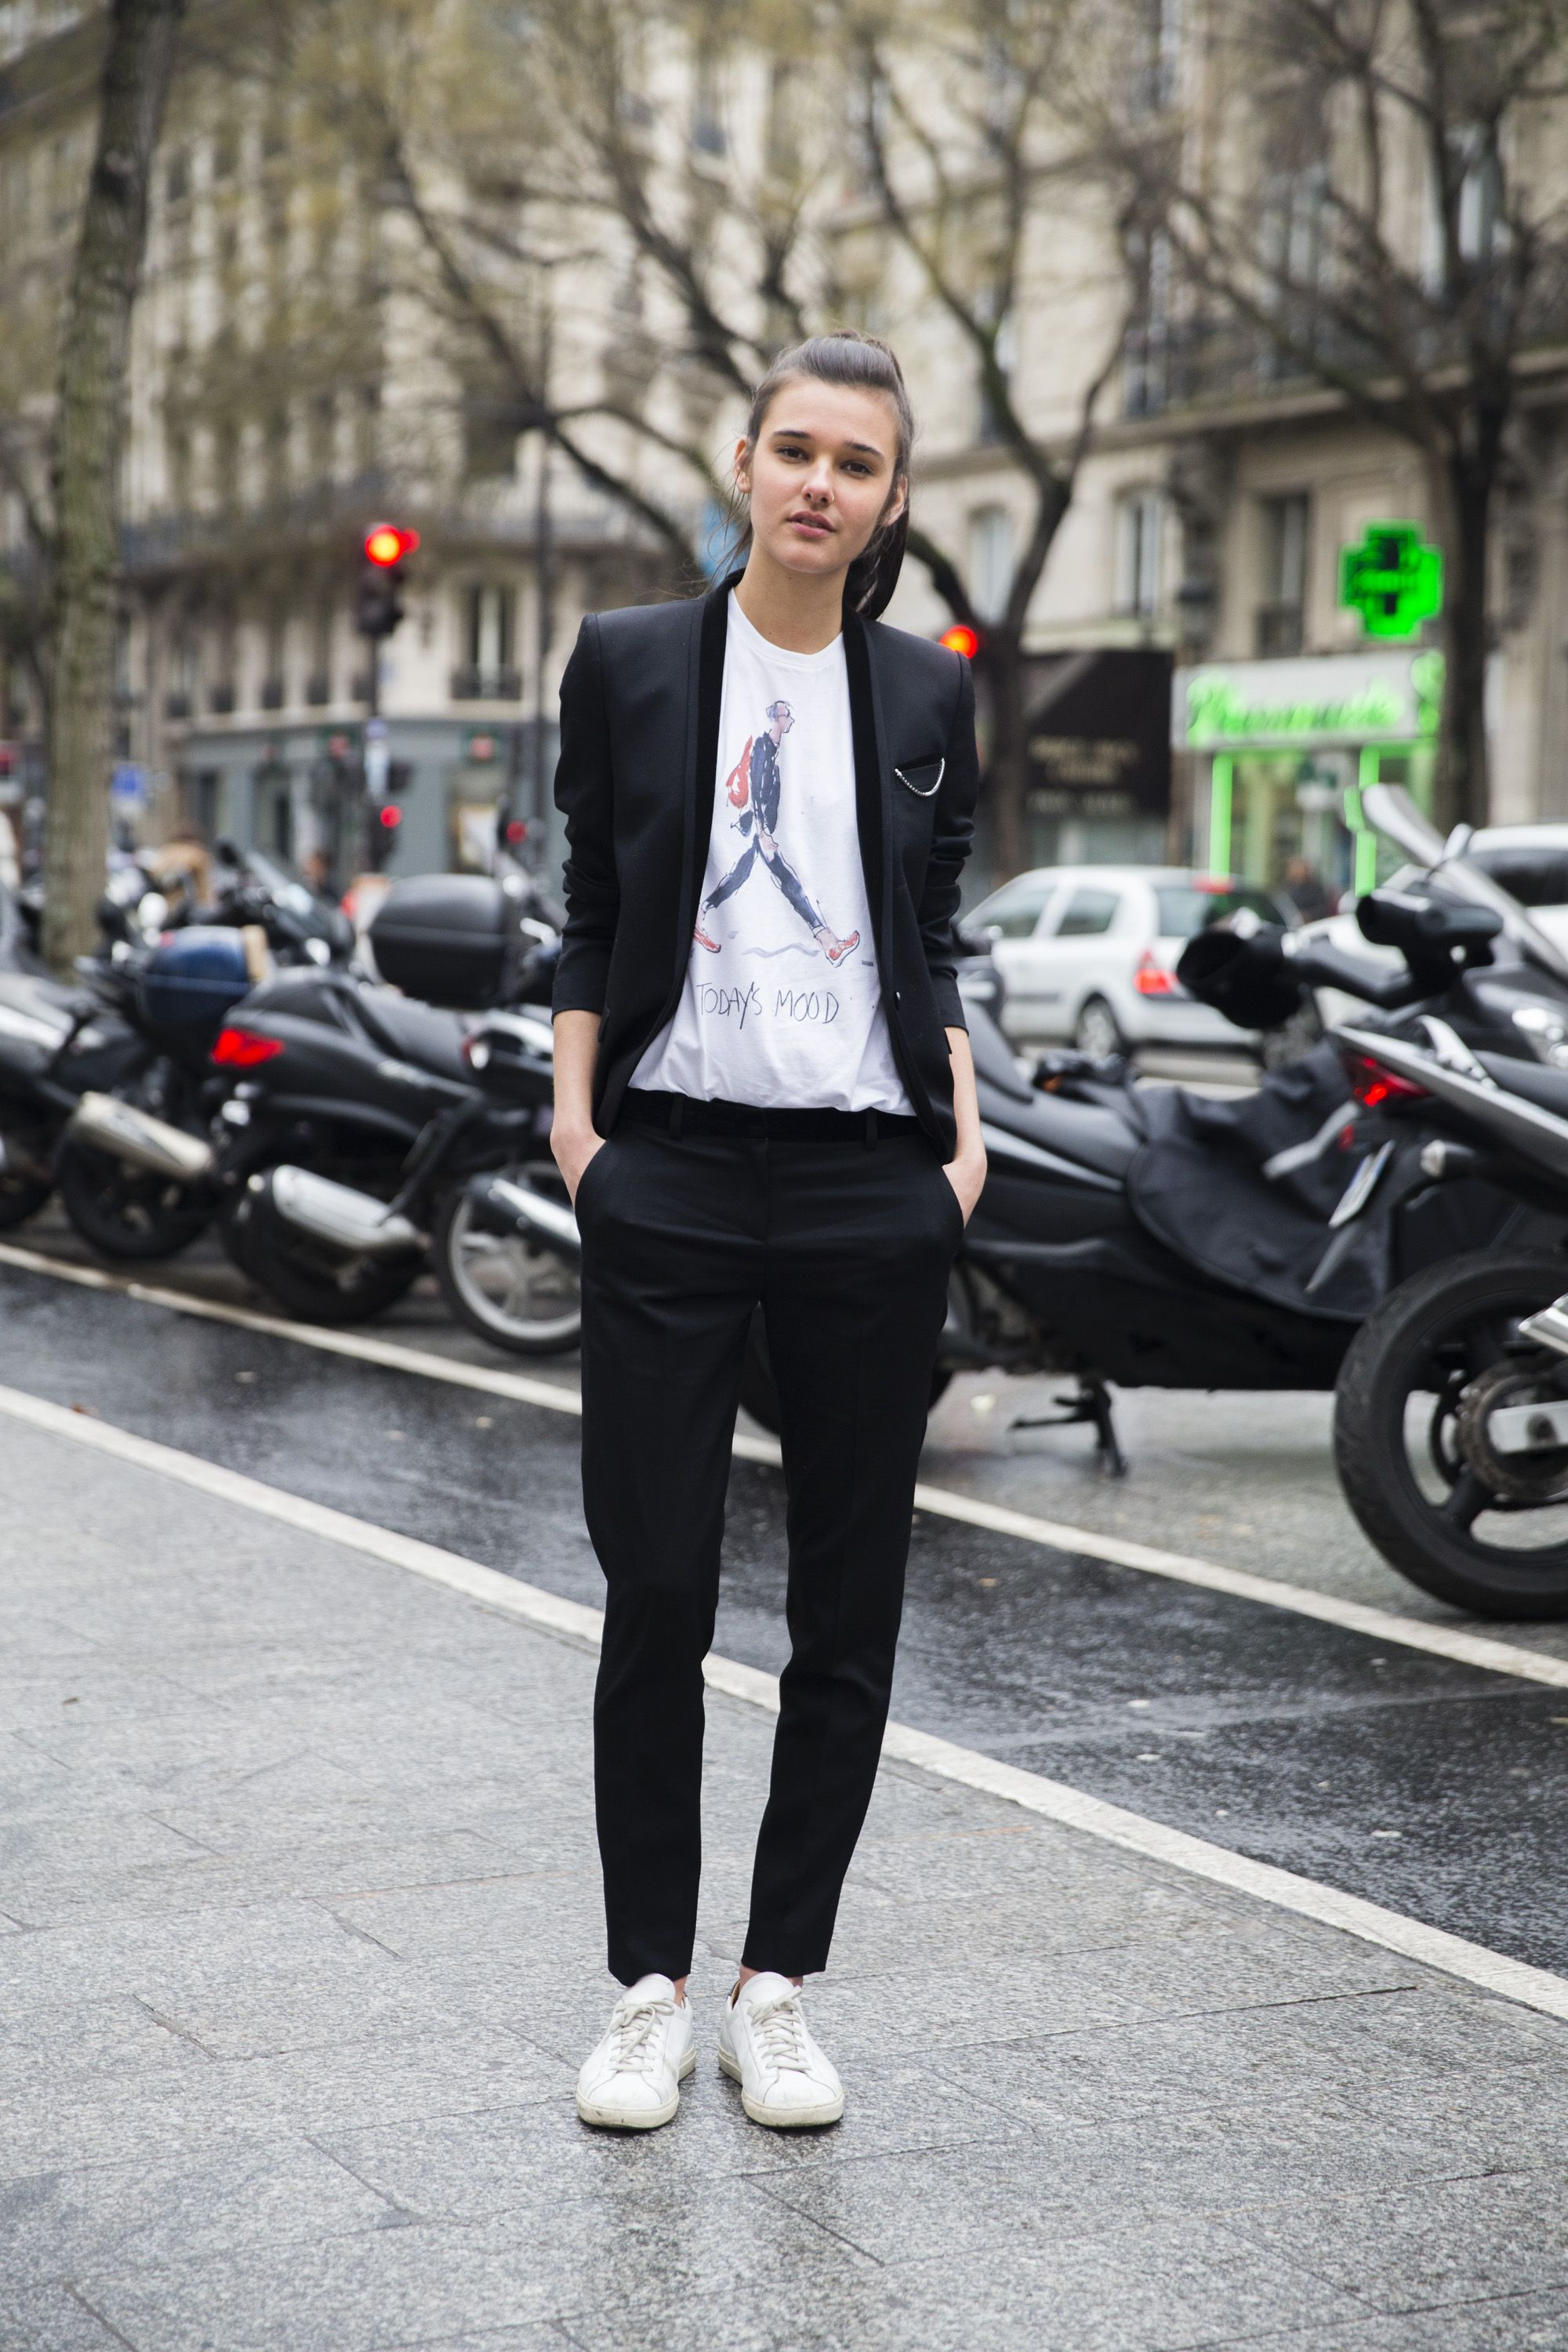 PARIS, FRANCE - JANUARY 23:  Model Jenny Albright wears a slim black Kooples suit with a Richard Haines illustration t-shirt on January 23, 2016 in Paris, France.  (Photo by Melodie Jeng/Getty Images)